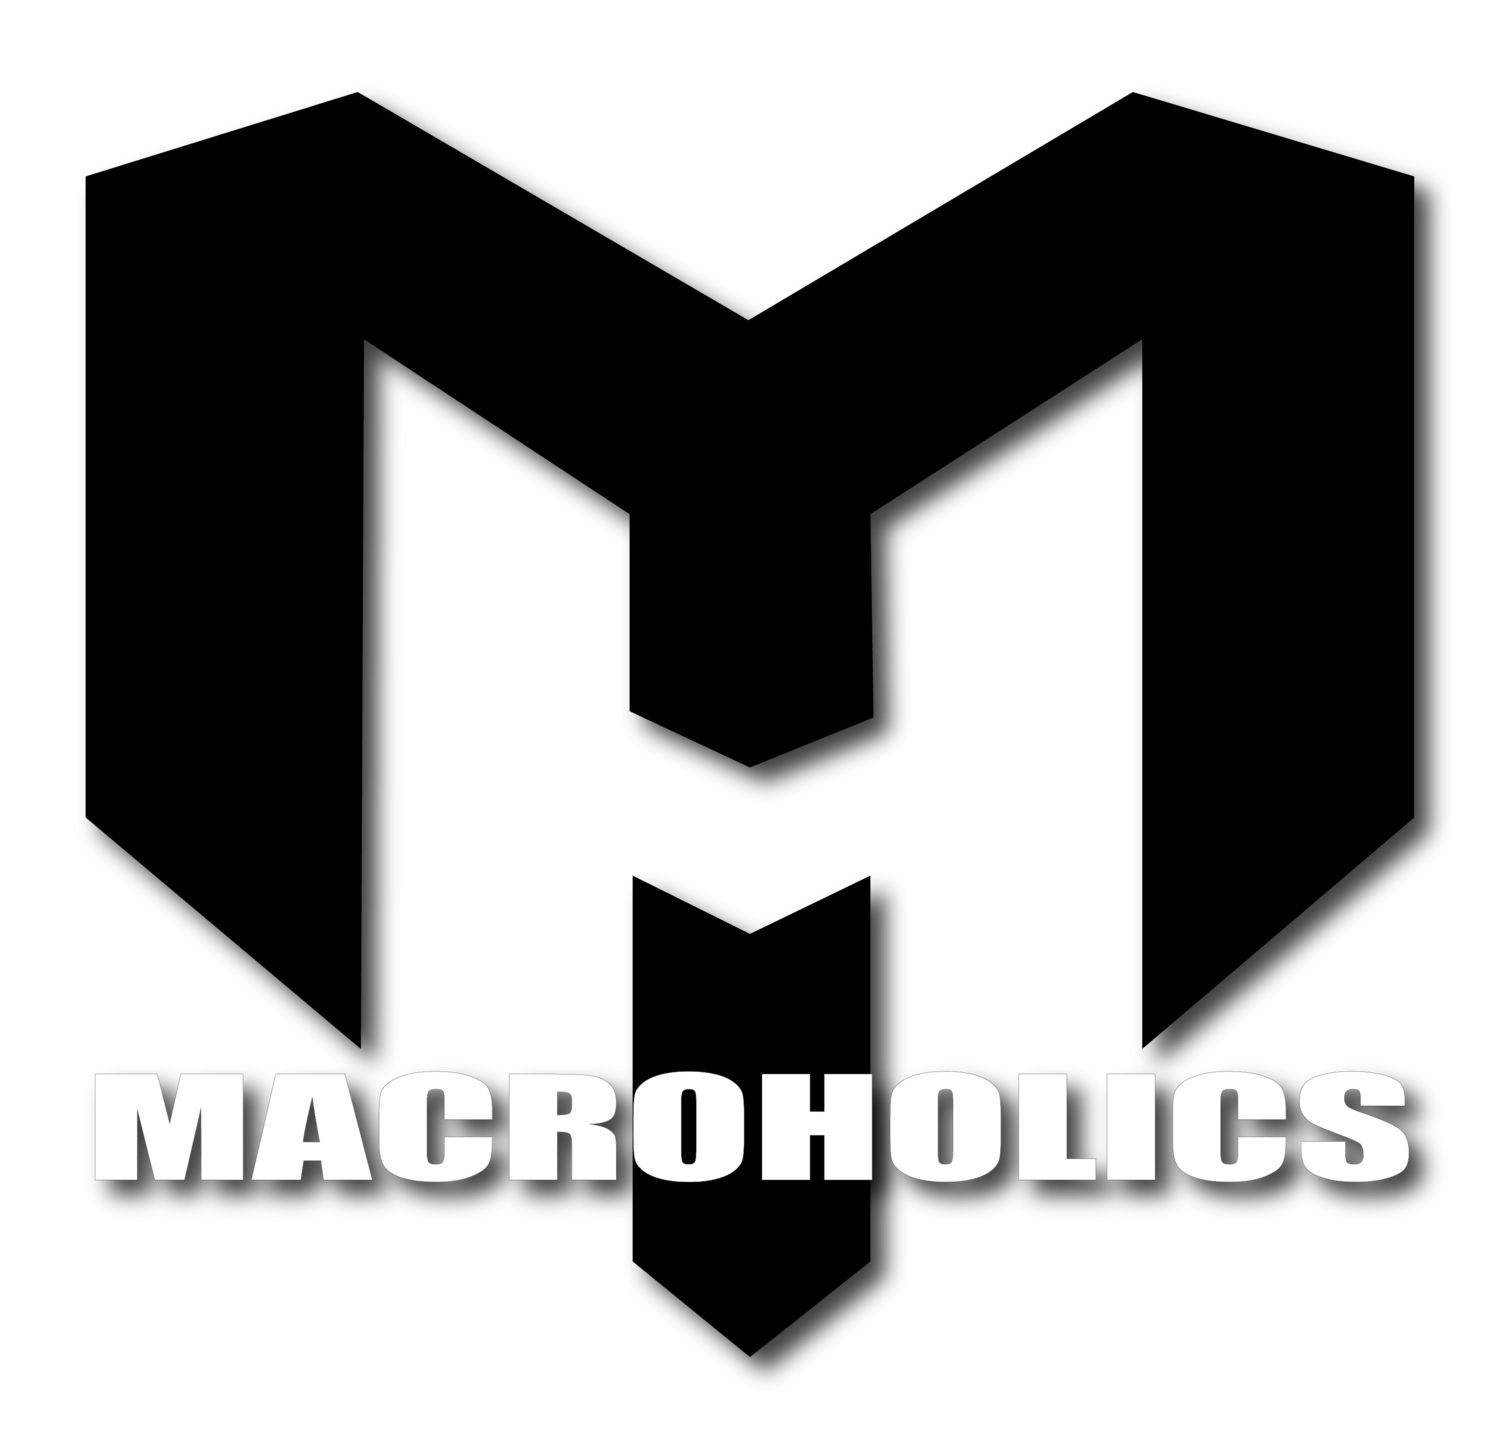 About Macroholics - Macroholics Nutrition is a remote nutrition coaching service for people from all over the world that is located in Lubbock, Texas.They build a nutrition system around your lifestyle to facilitate a sustainable program you can execute anywhere, always, and forever in order to achieve and maintain a healthy, lean physique.They have helped hundreds of people, from over a dozen countries, lose thousands of pounds with remote nutrition coaching VIA text message, email, and social media.